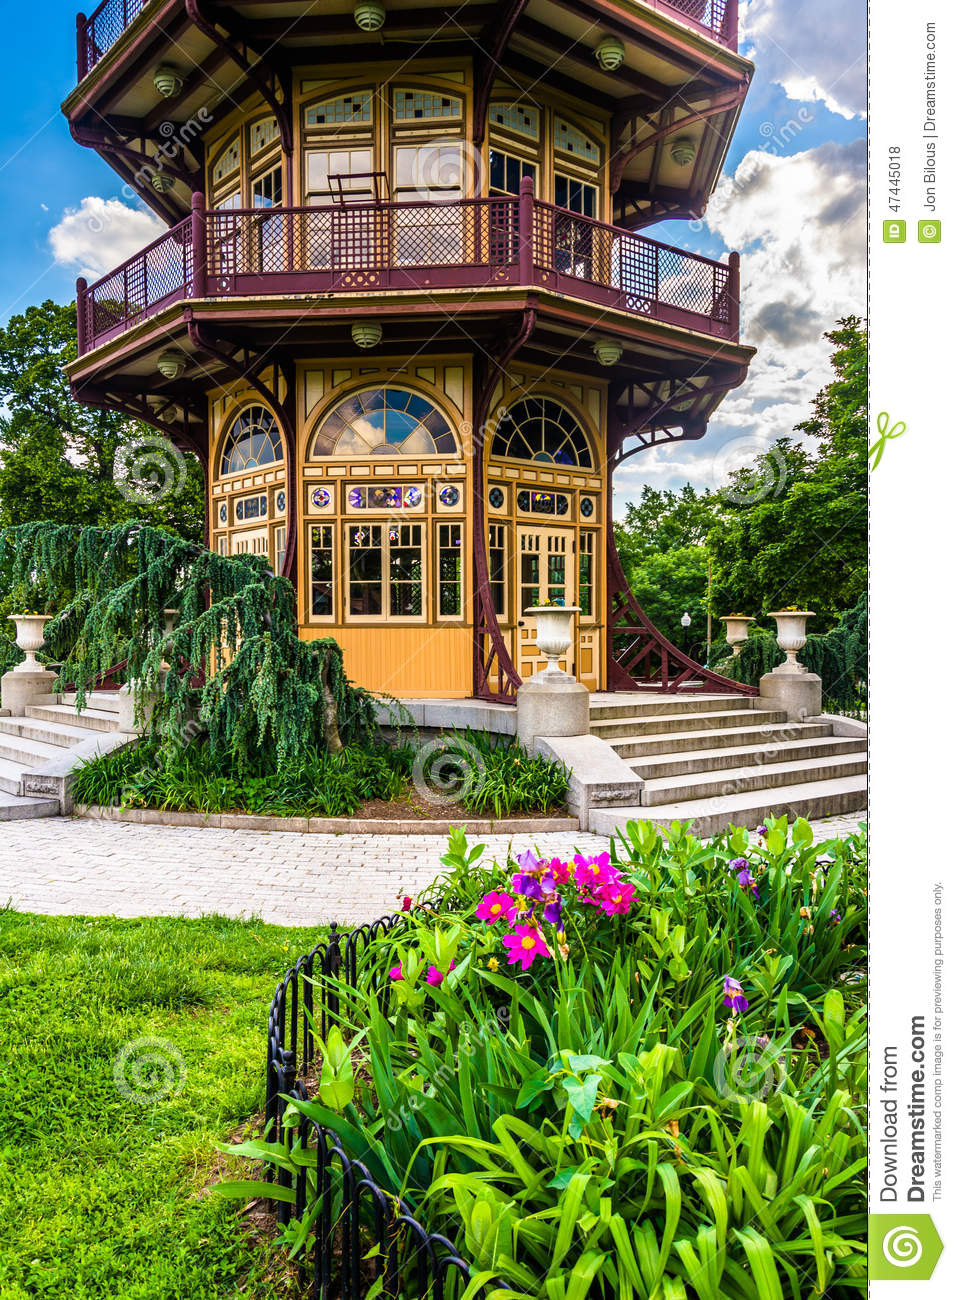 Garden and pagoda at Patterson Park in Baltimore, Maryland.